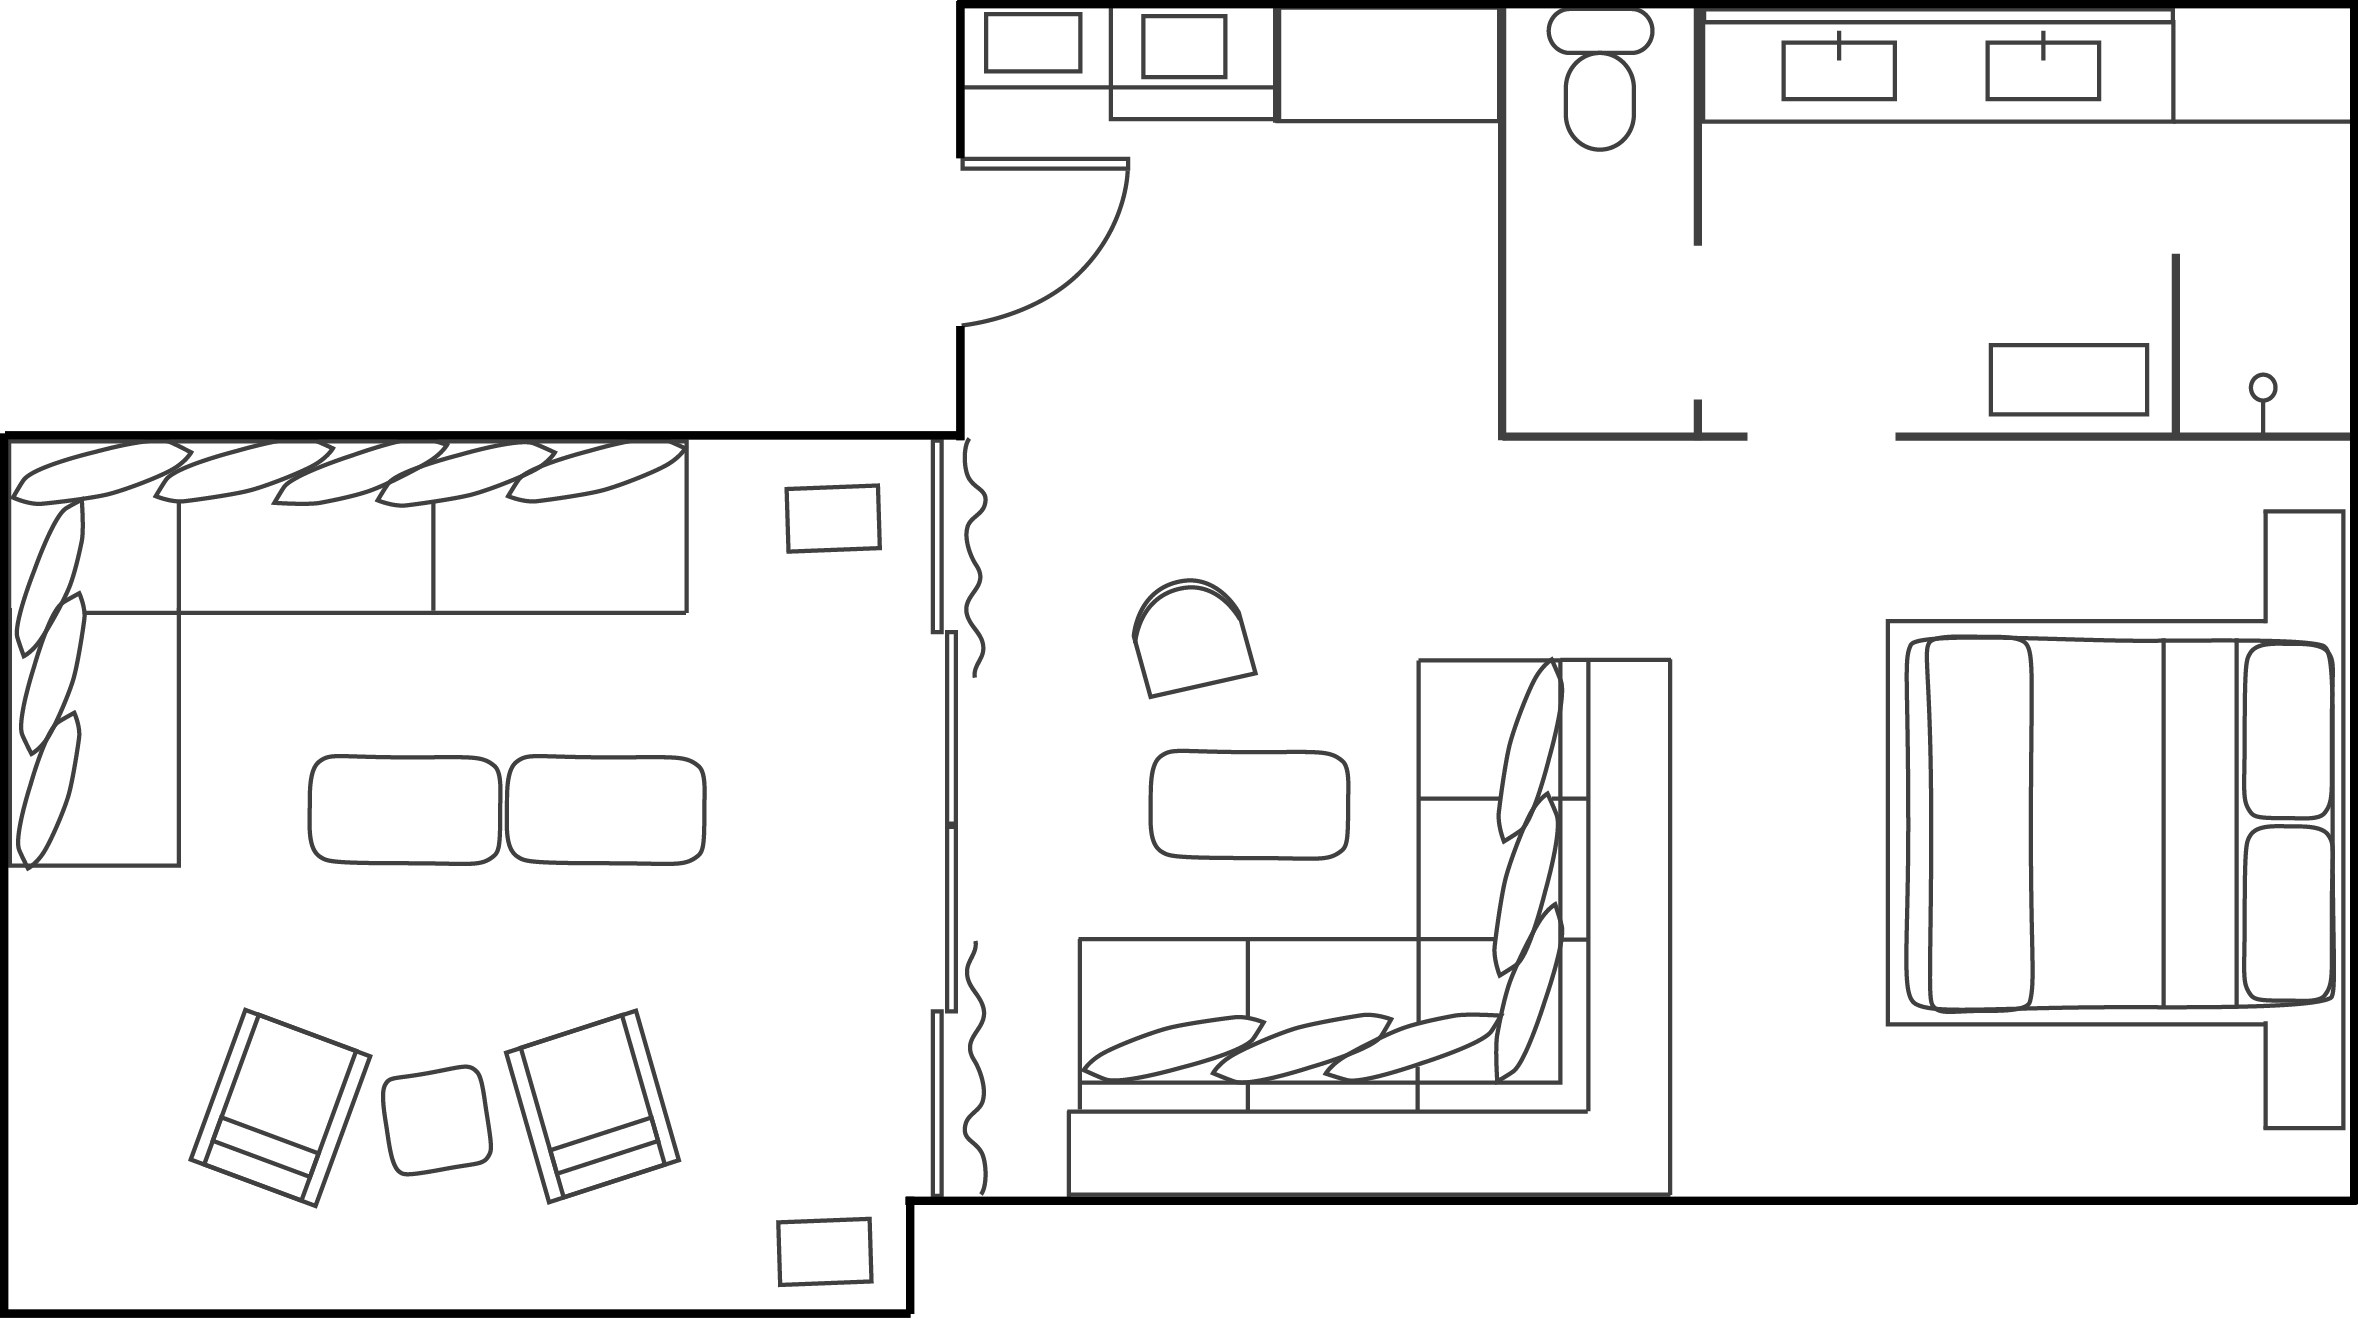 Floor Plan of Mountain Suite Hotel Room